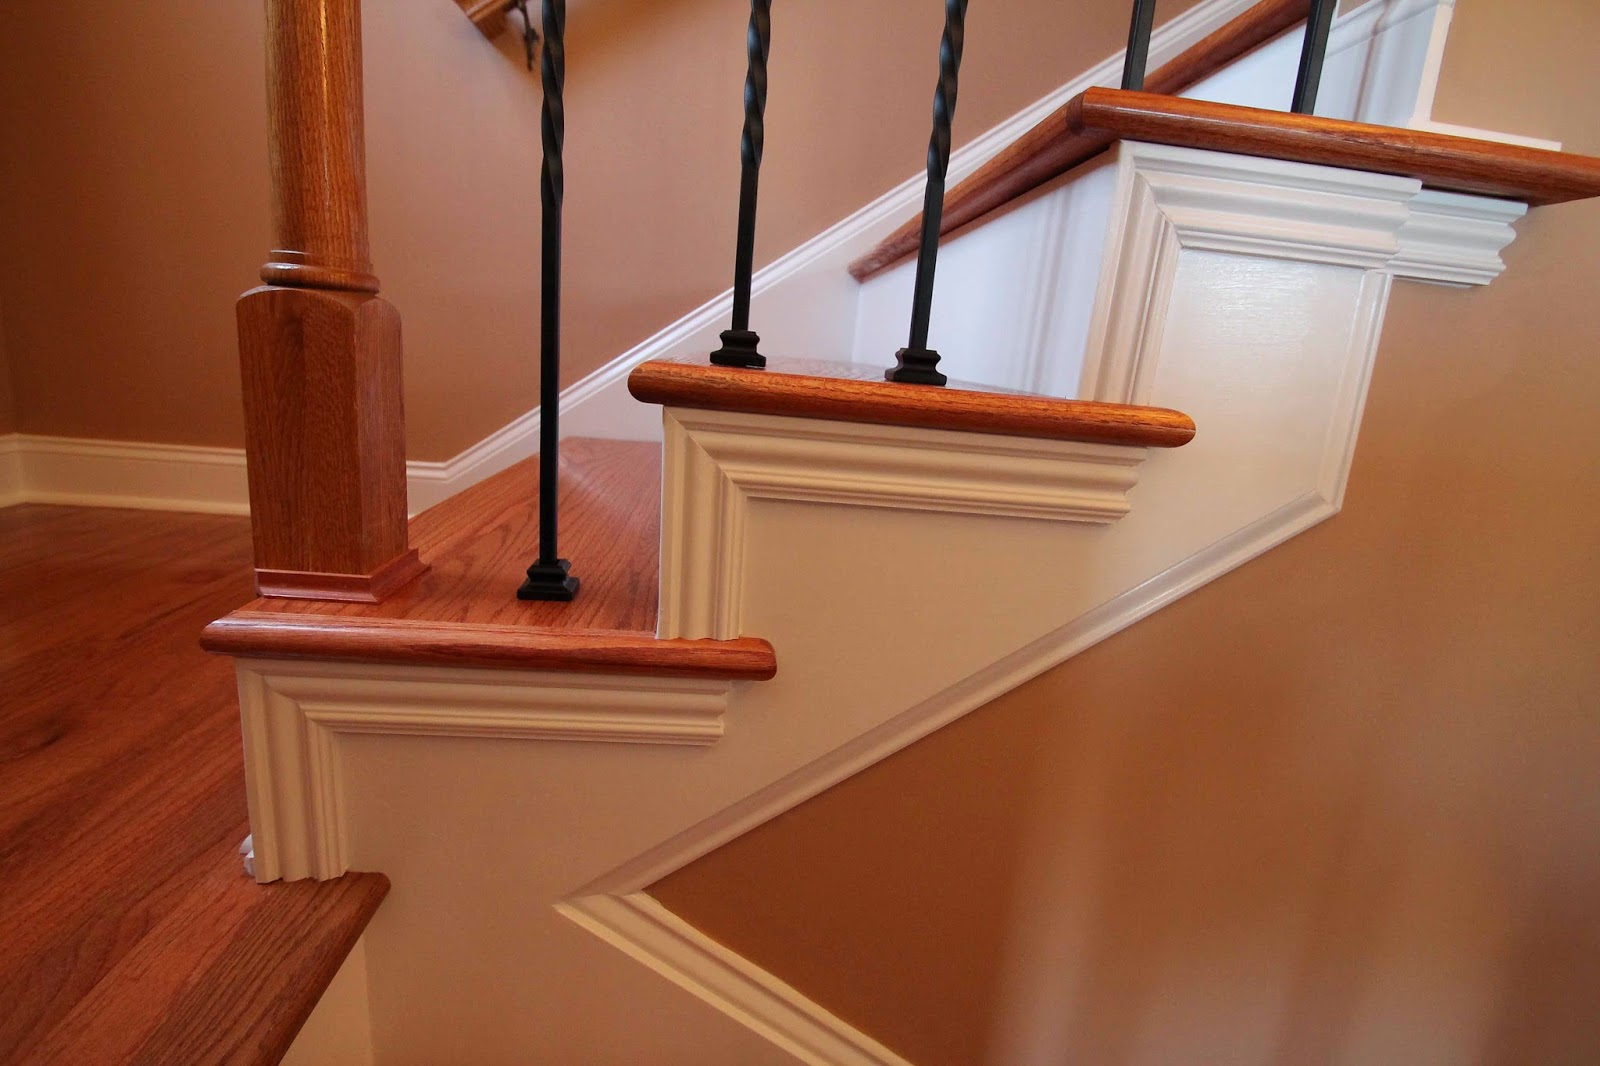 The Hardwood Steps Are Finished